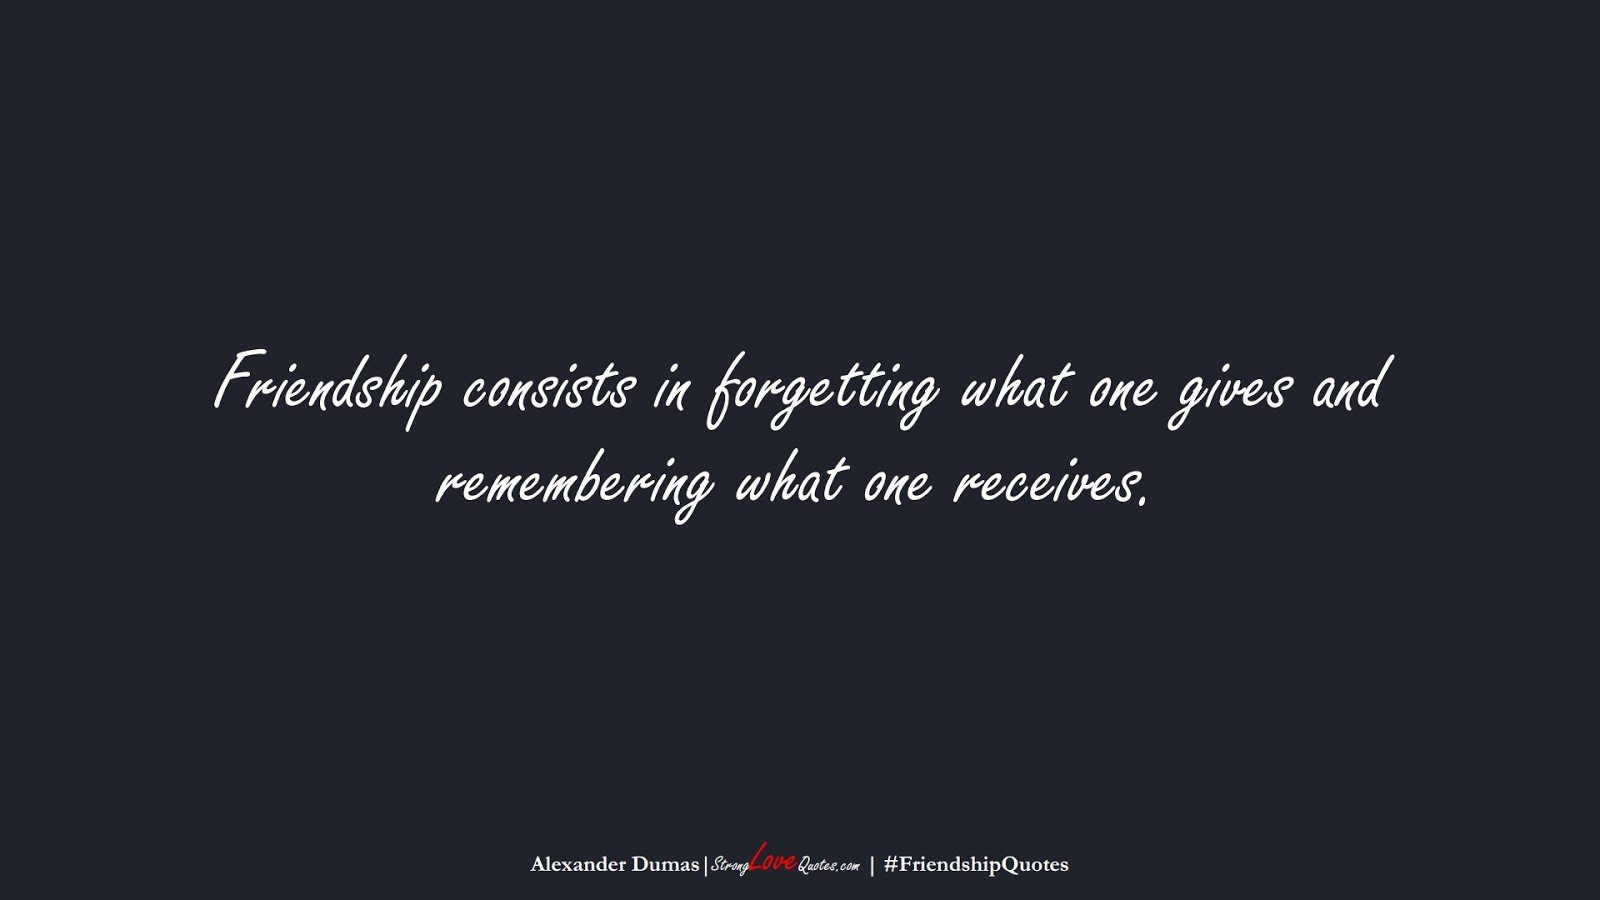 Friendship consists in forgetting what one gives and remembering what one receives. (Alexander Dumas);  #FriendshipQuotes